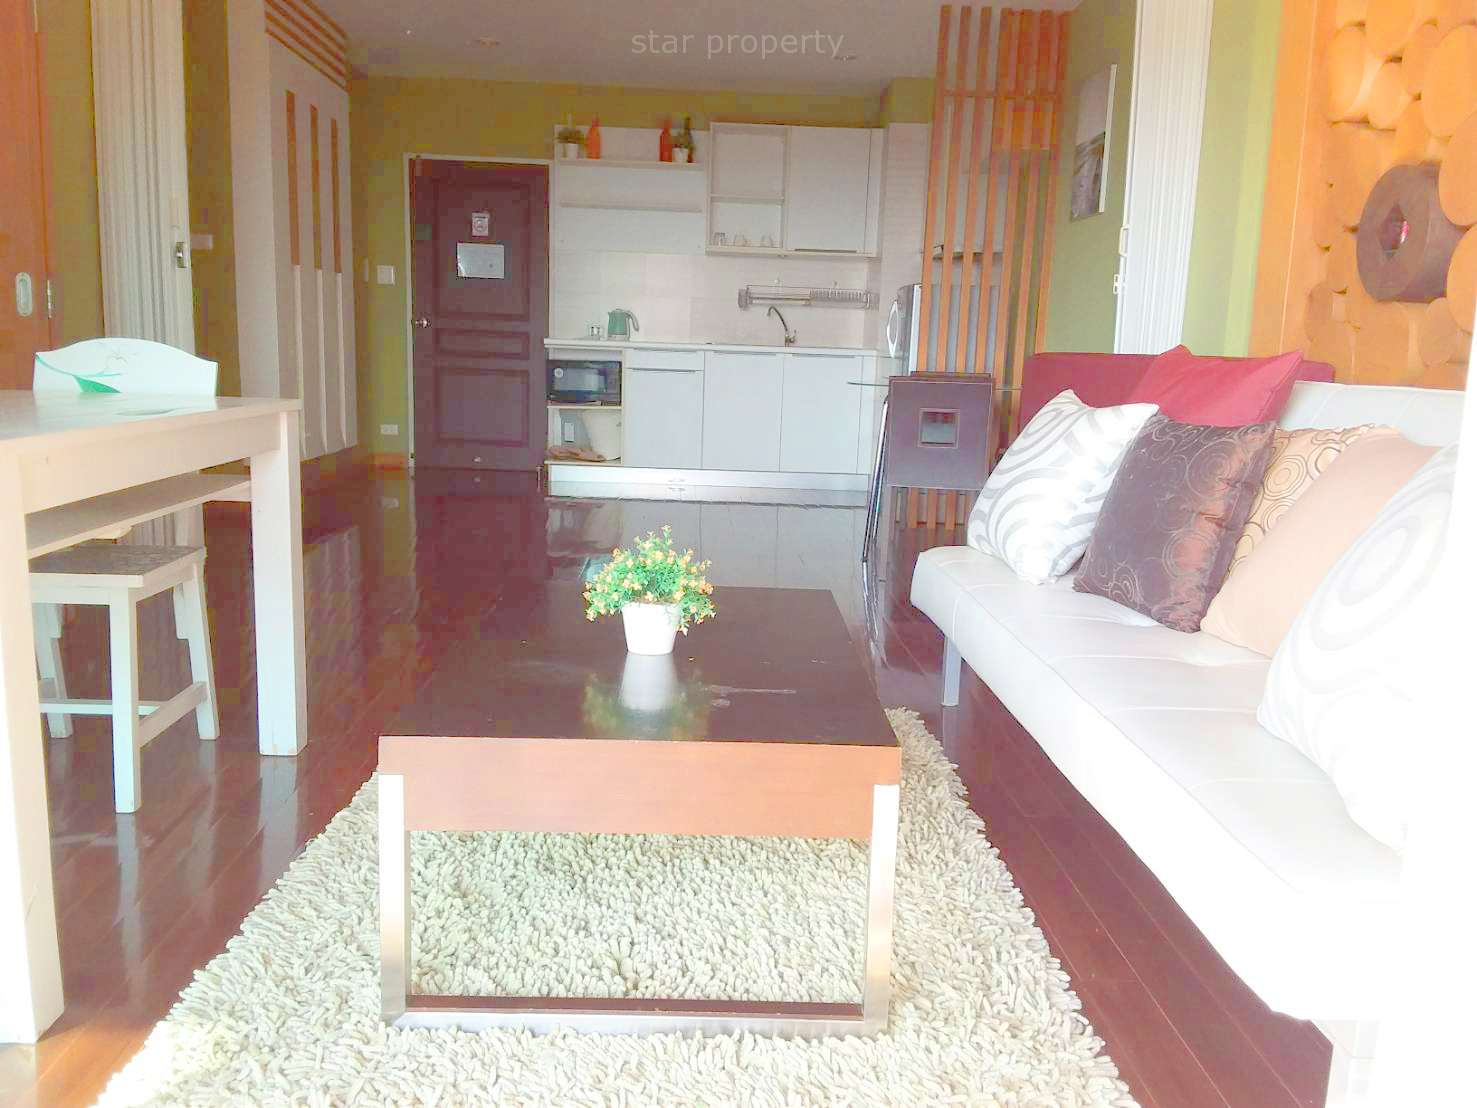 1 Bedroom apartment for sale hua hin